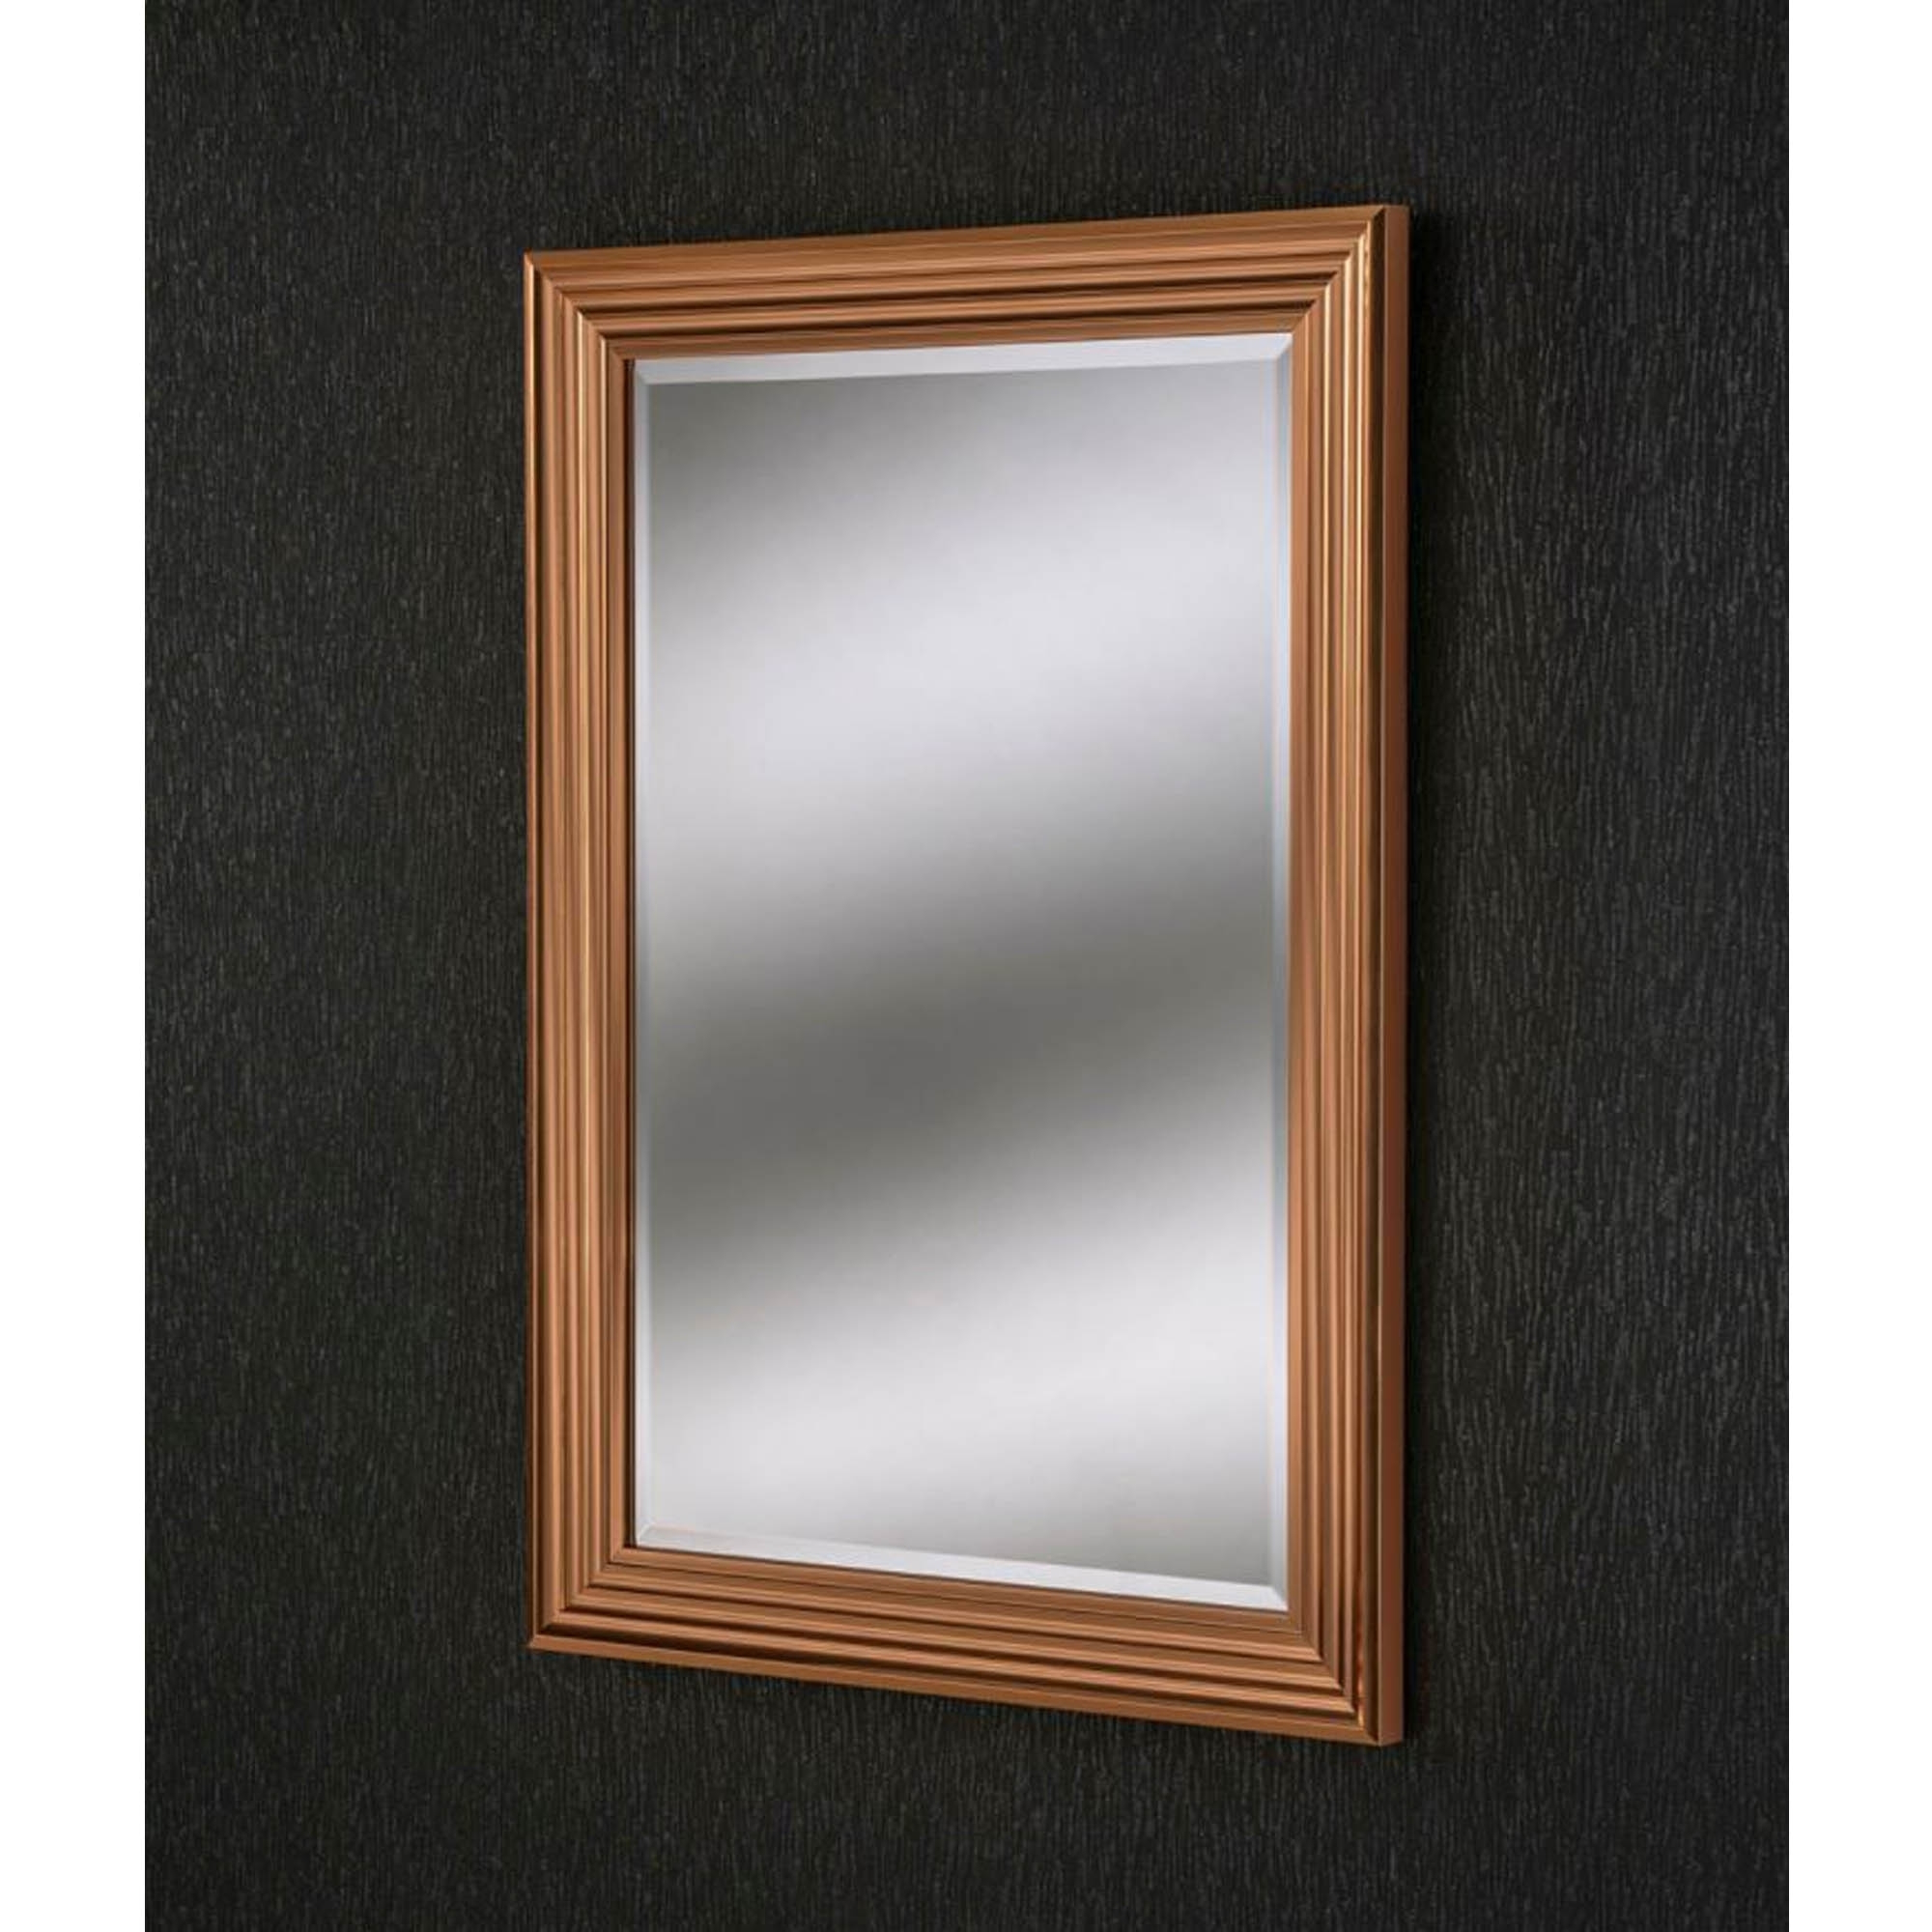 Fashionable Copper Wall Mirrors Intended For Copper Bevel Rectangular Wall Mirror (View 16 of 20)